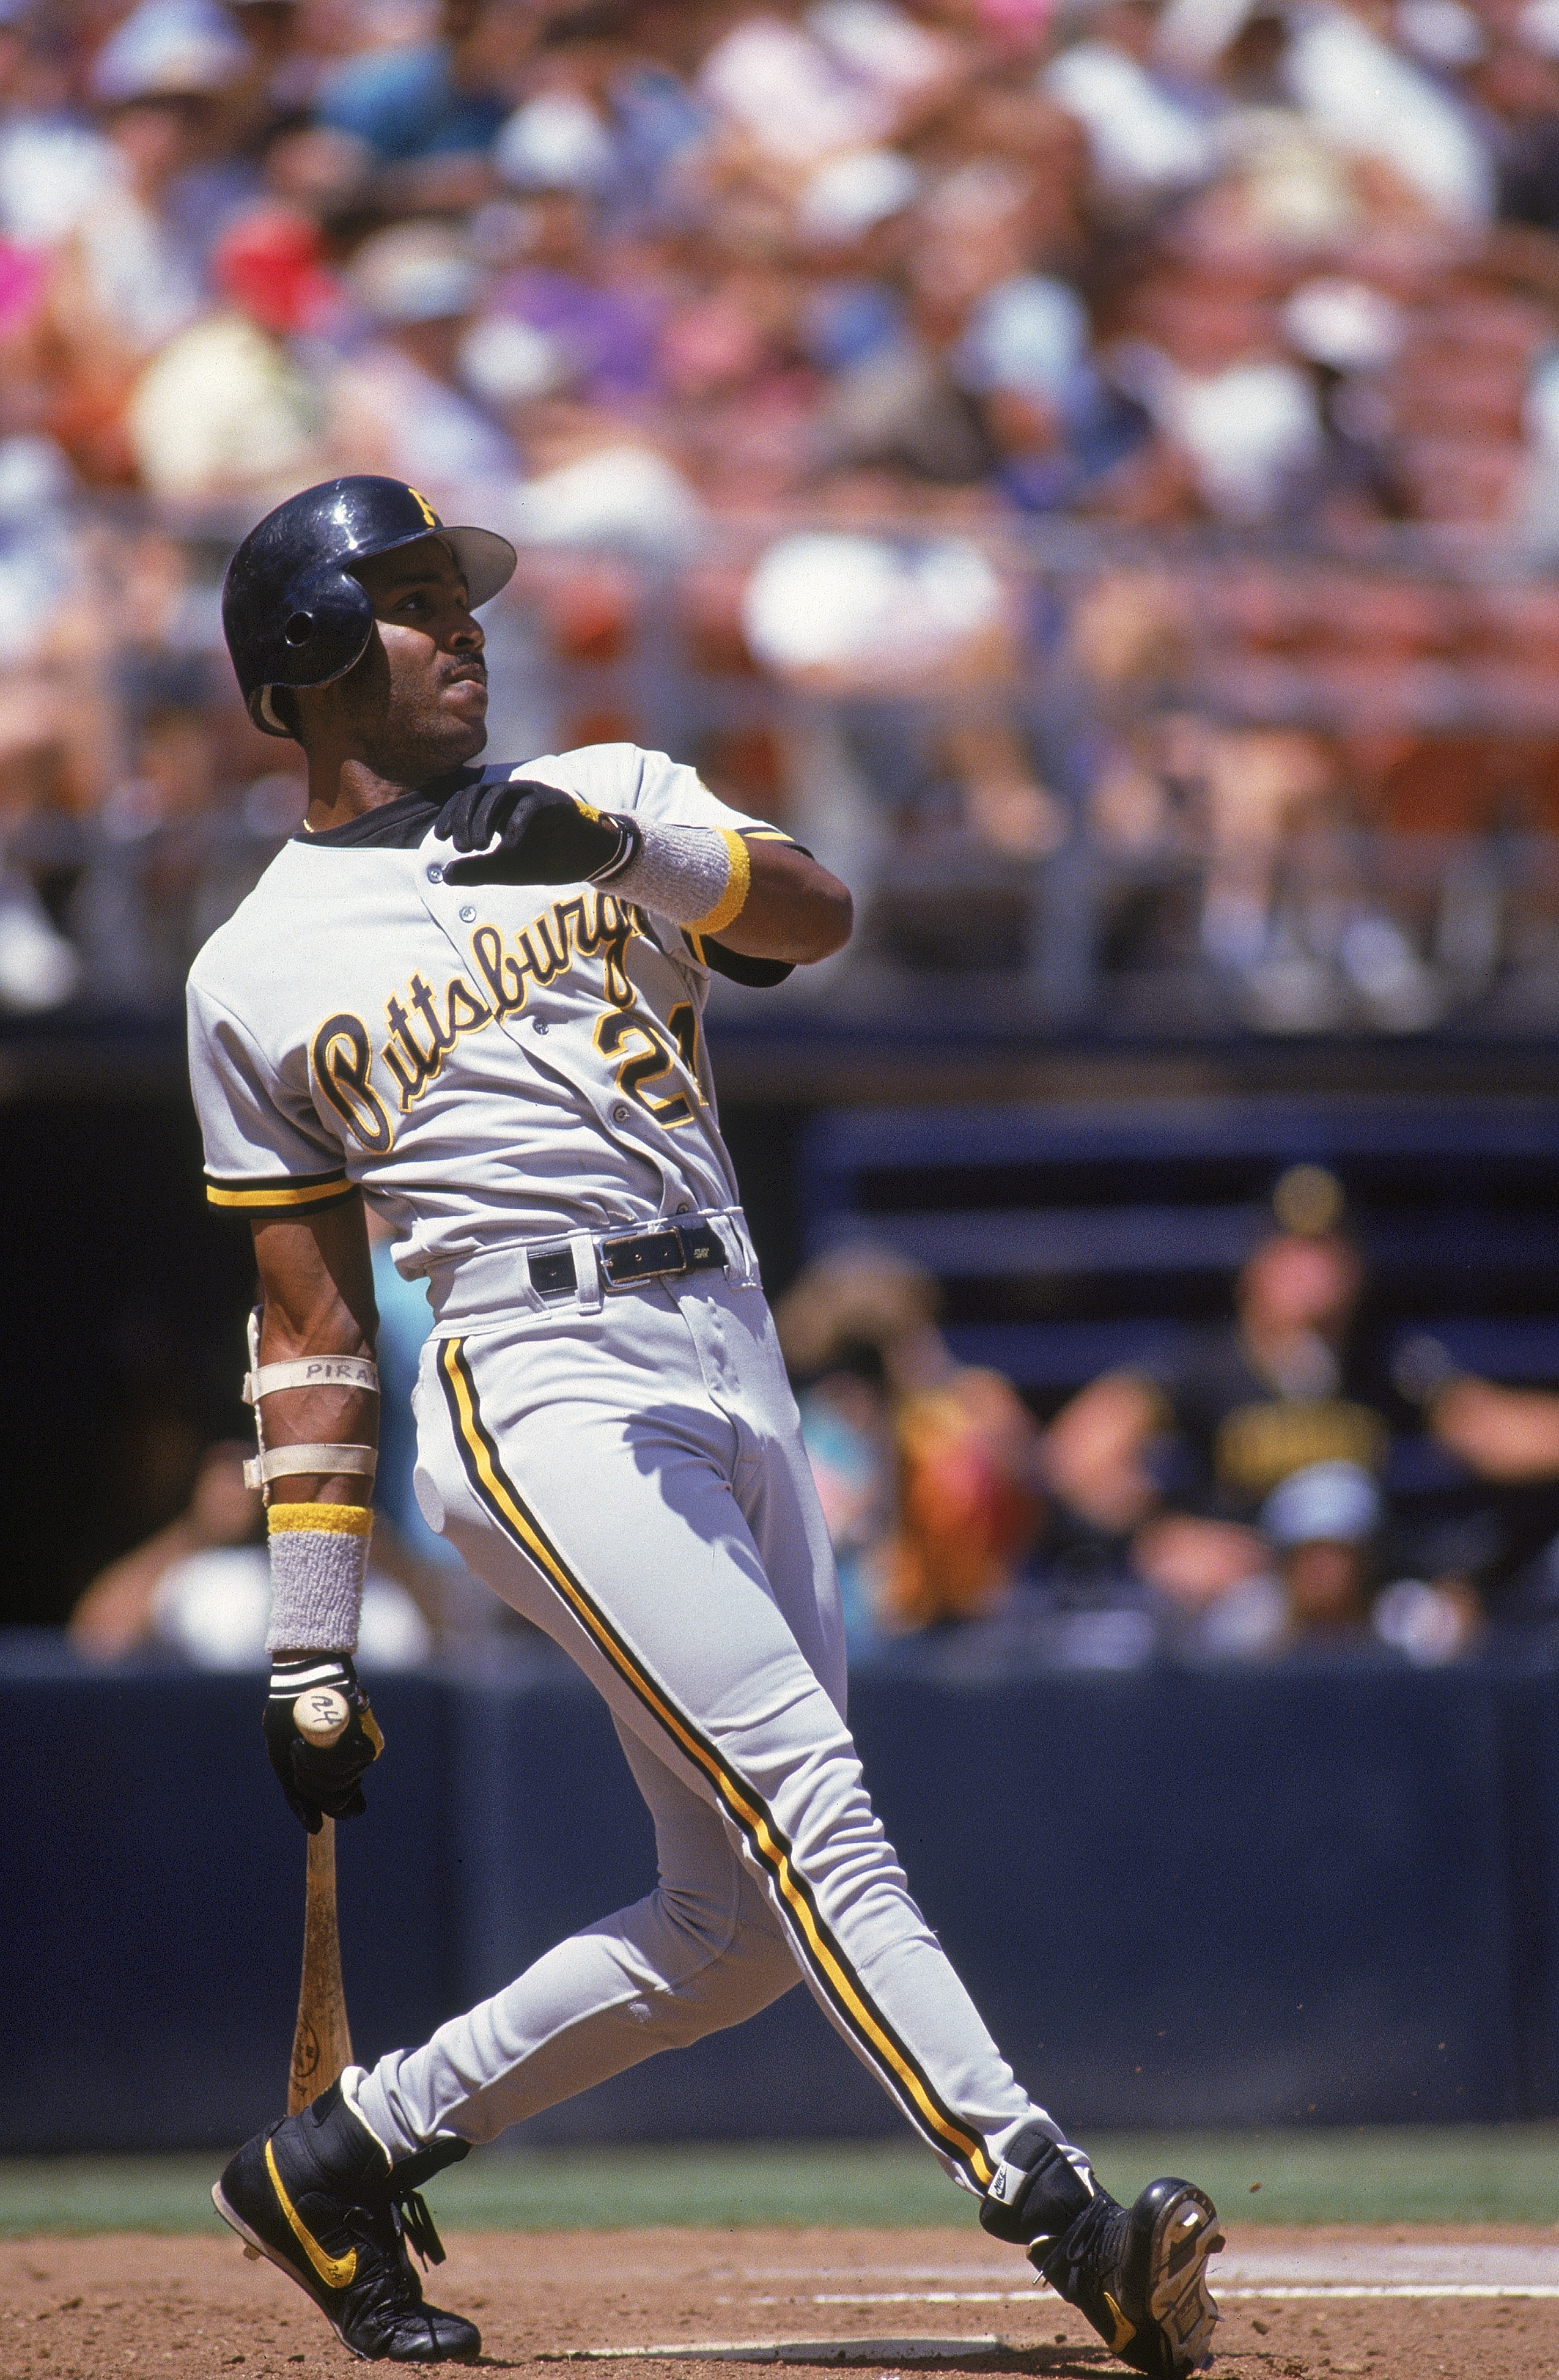 SAN DIEGO - AUGUST 30: Barry Bonds #24  of the Pittsburgh Pirates watches the flight of his hit against the San Diego Padres on August 30, 1992 at Jack Murphy Stadium in San Diego, California. Barry Bonds made his 165 career home run during this game. Bar